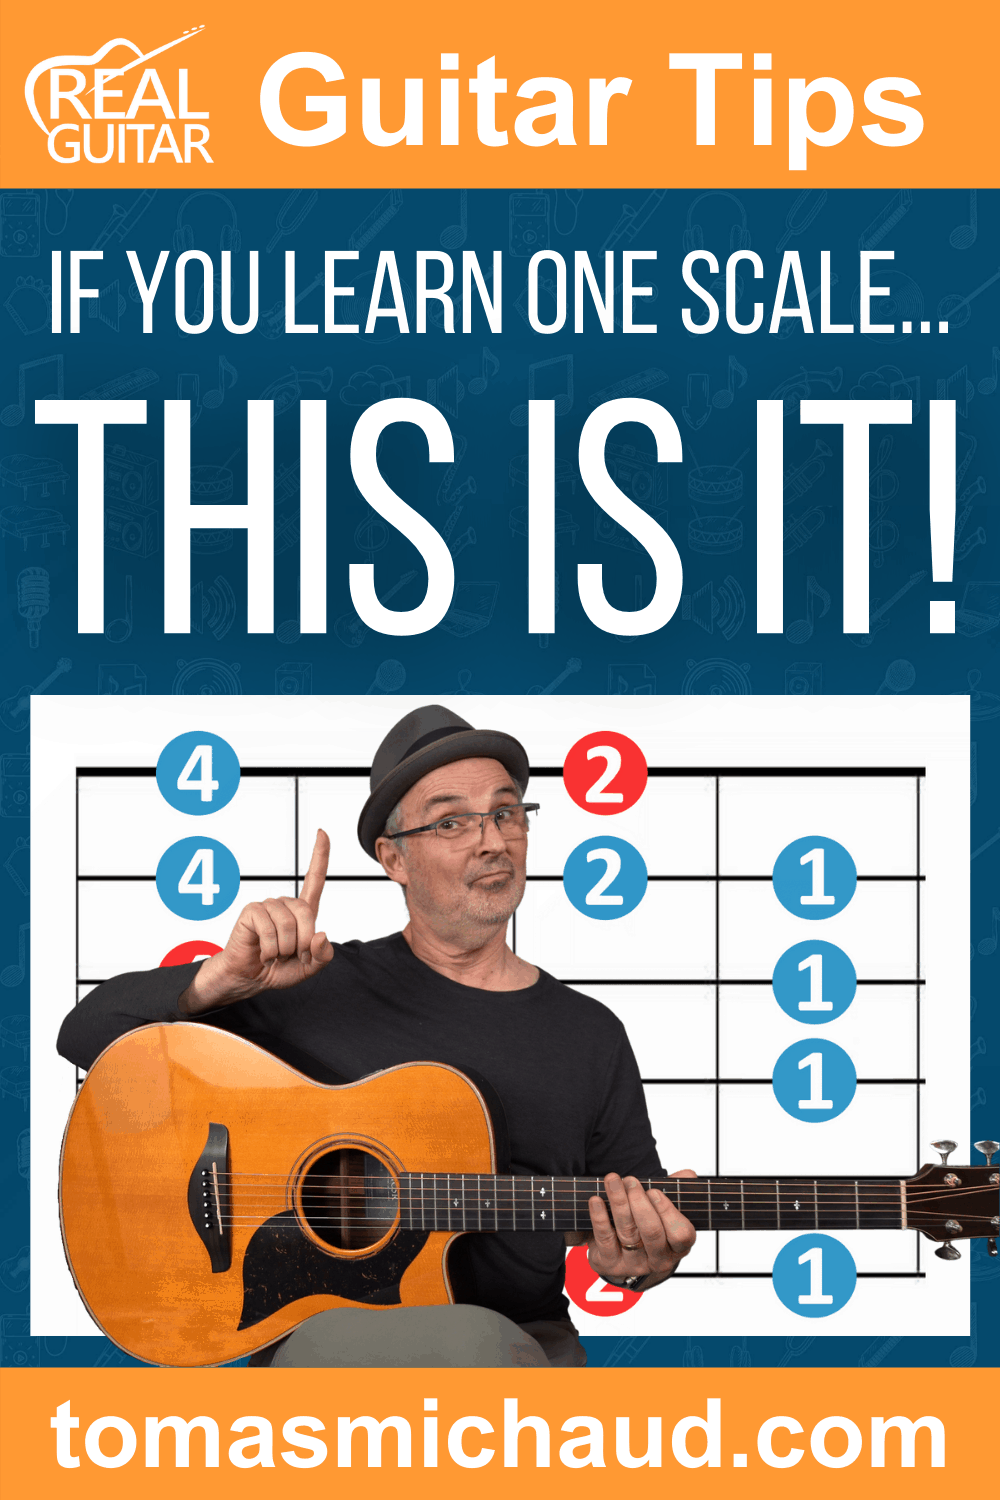 If you learn one scale... This is it!